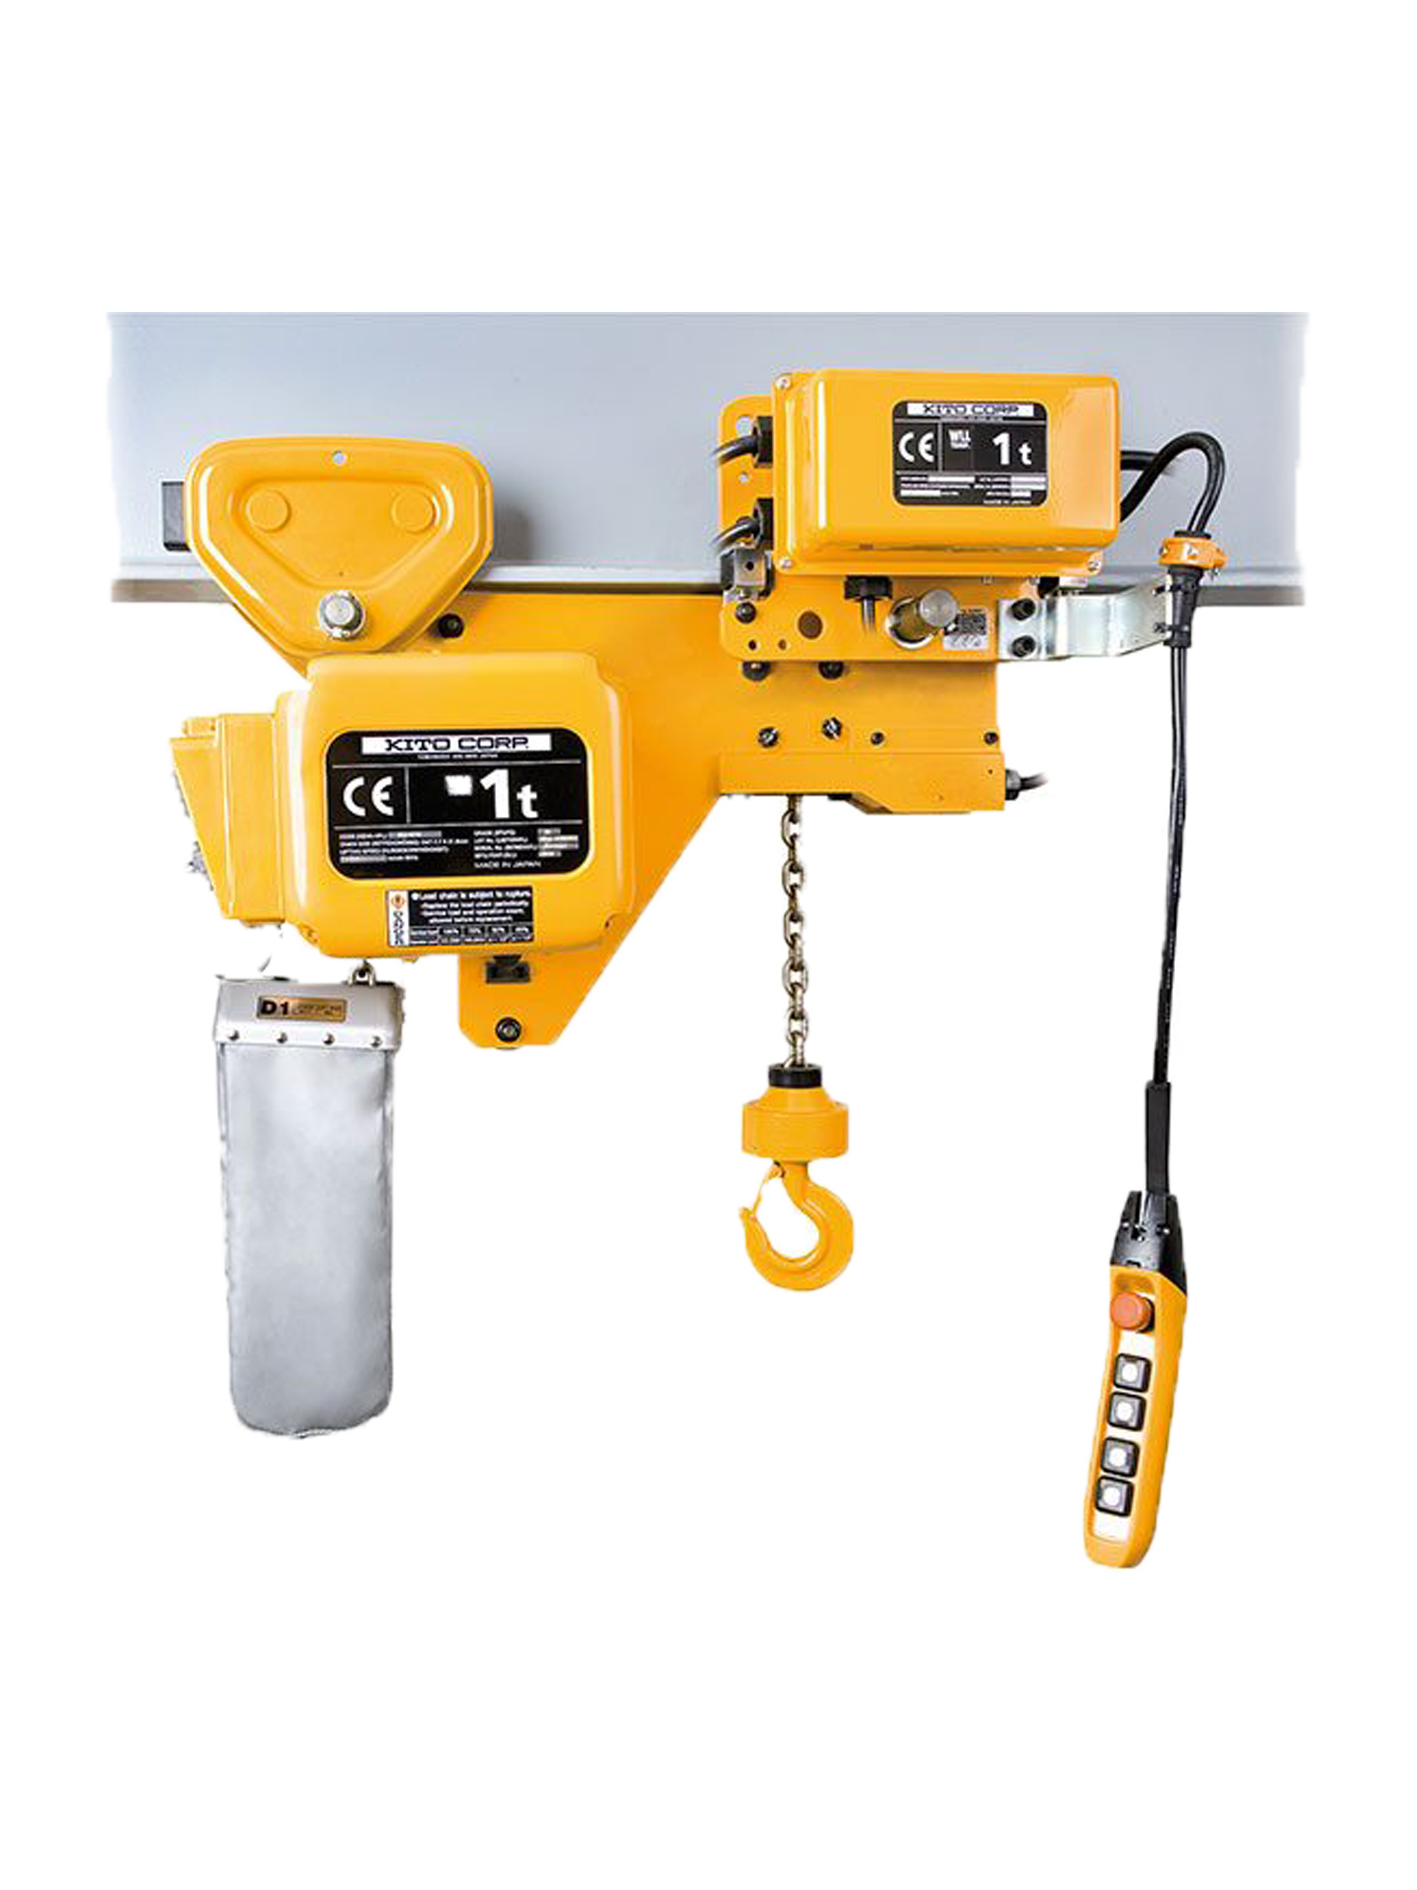 KITO electric chain hoist with ultralow building height